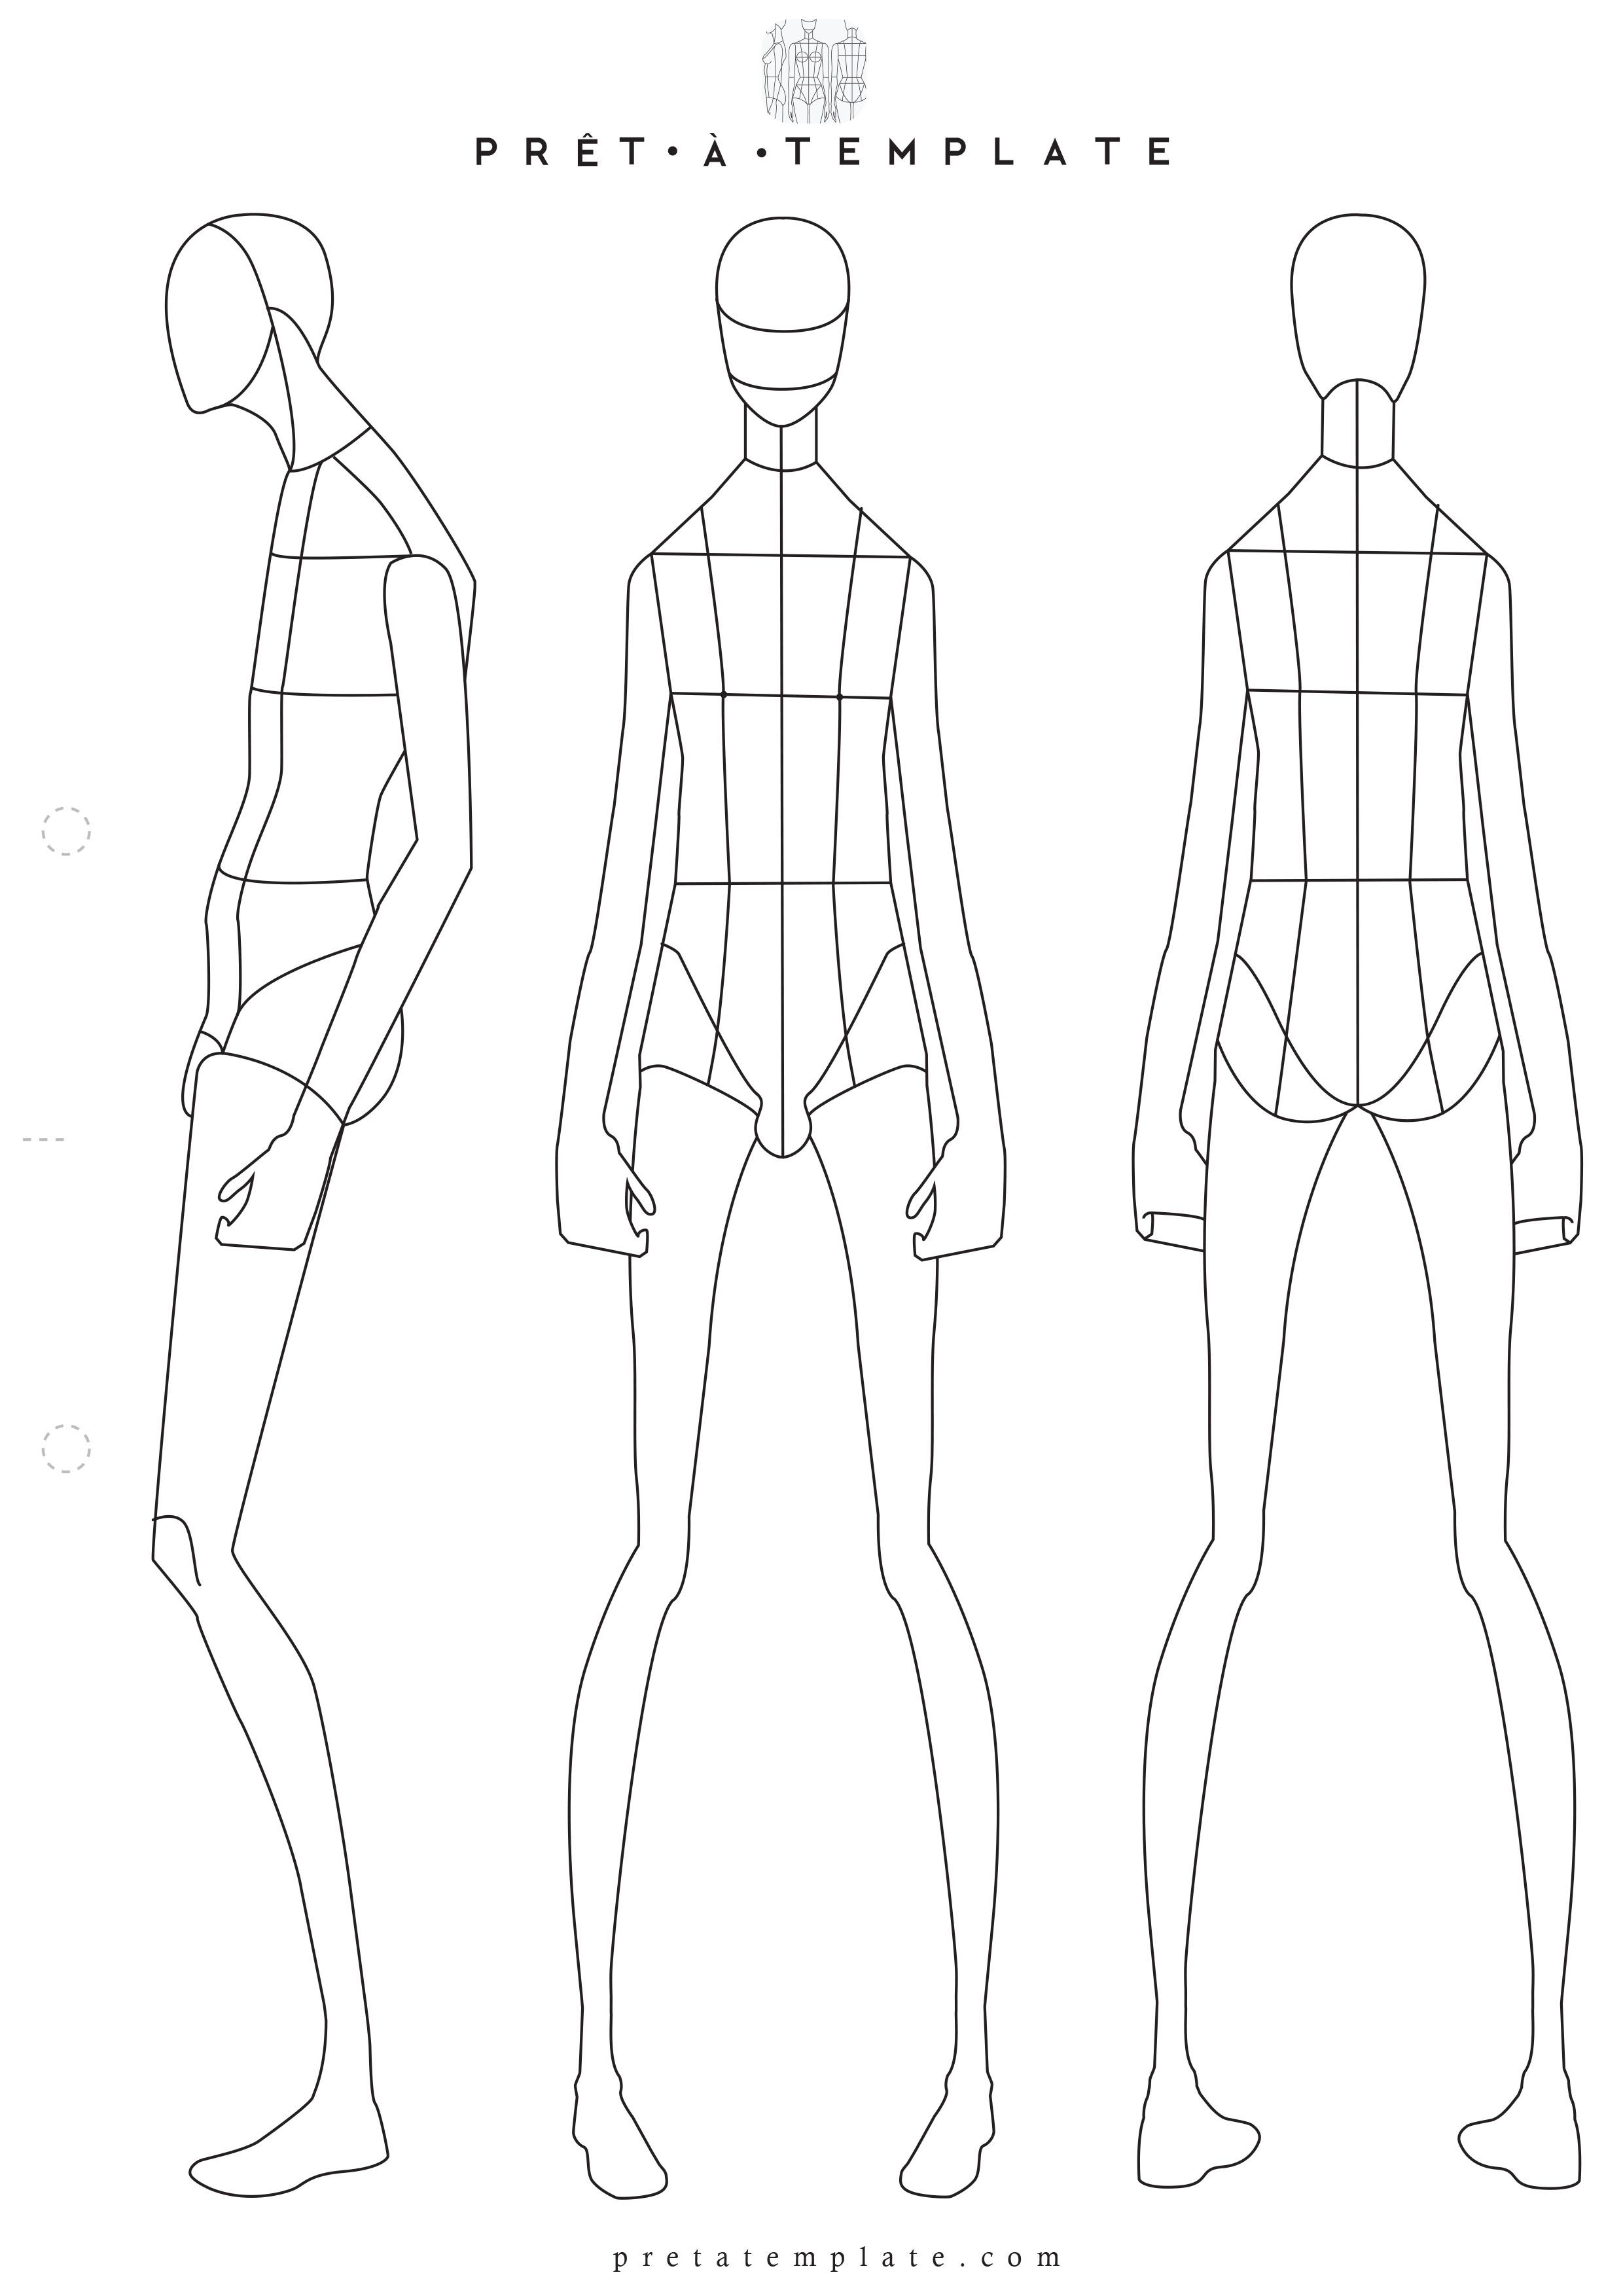 Man Male Body Figure Fashion Template D I Y Your Own Sketchbook Keywords Ilration Drawing Design Tool